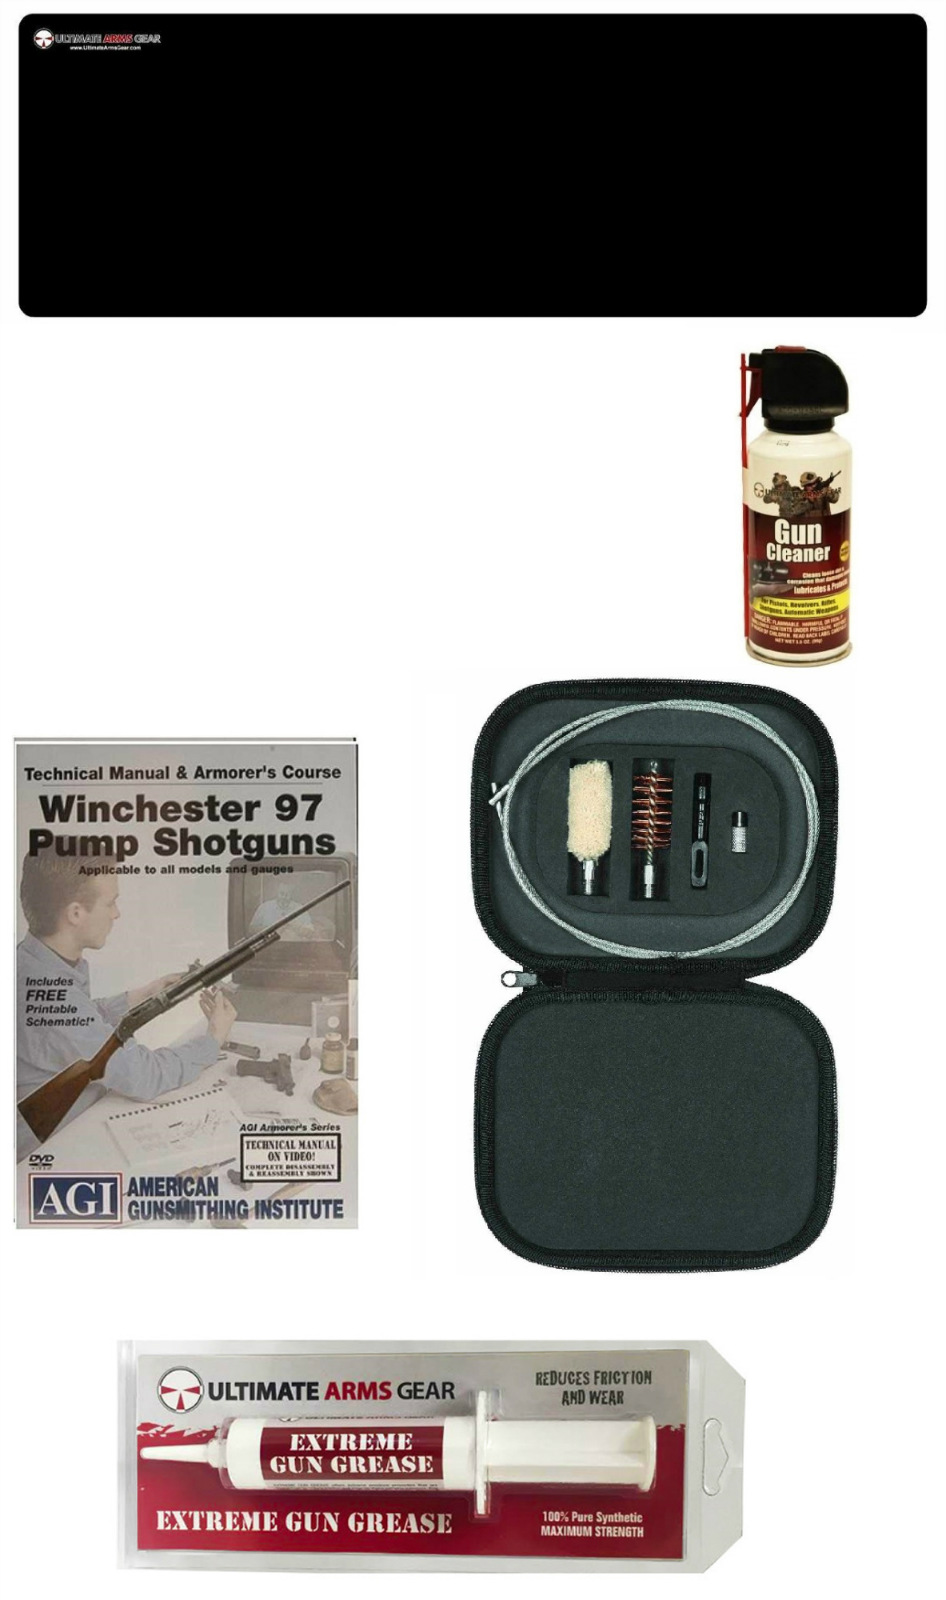 AGI DVD Manual Course Winchester 97 Pump Shotgun + Ultimate Arms Gear Gunsmith Cleaning Gun Mat + Cleaning Tube Chamber... by